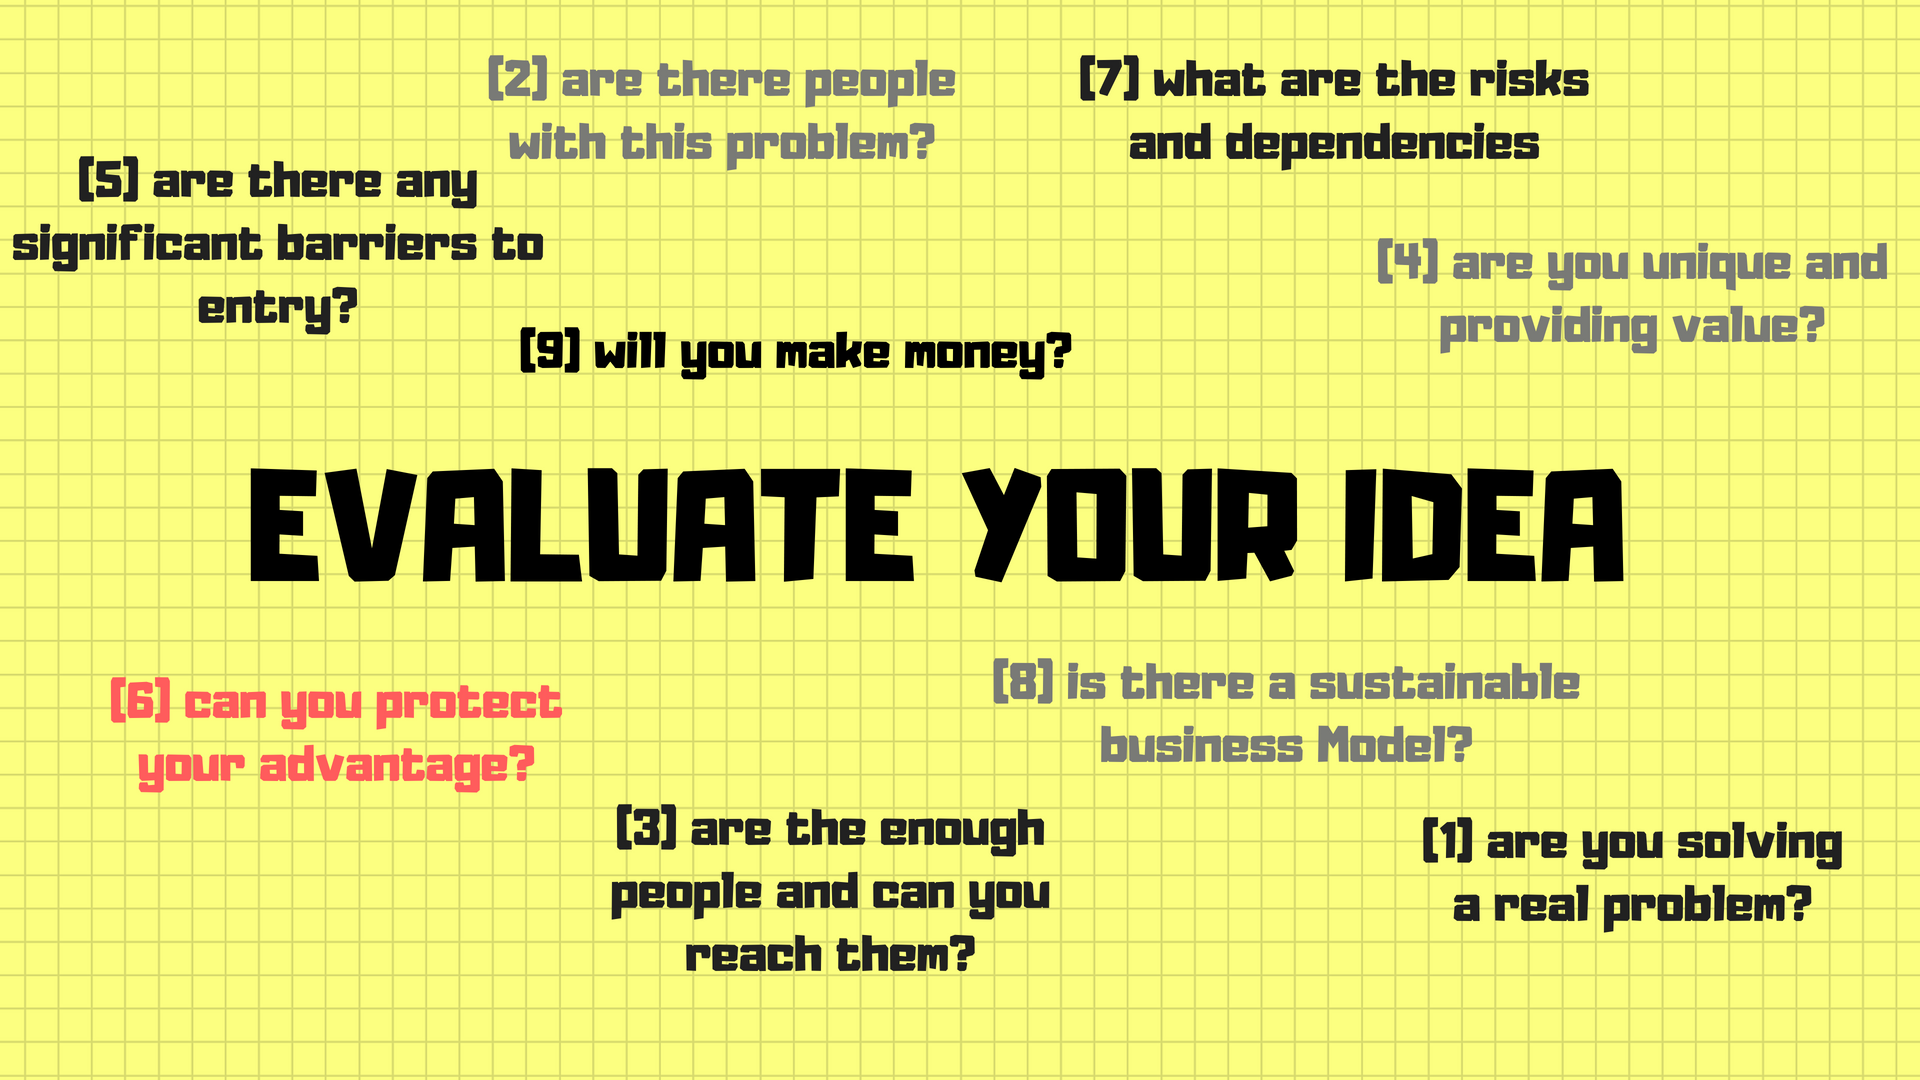 Evaluate your idea.png